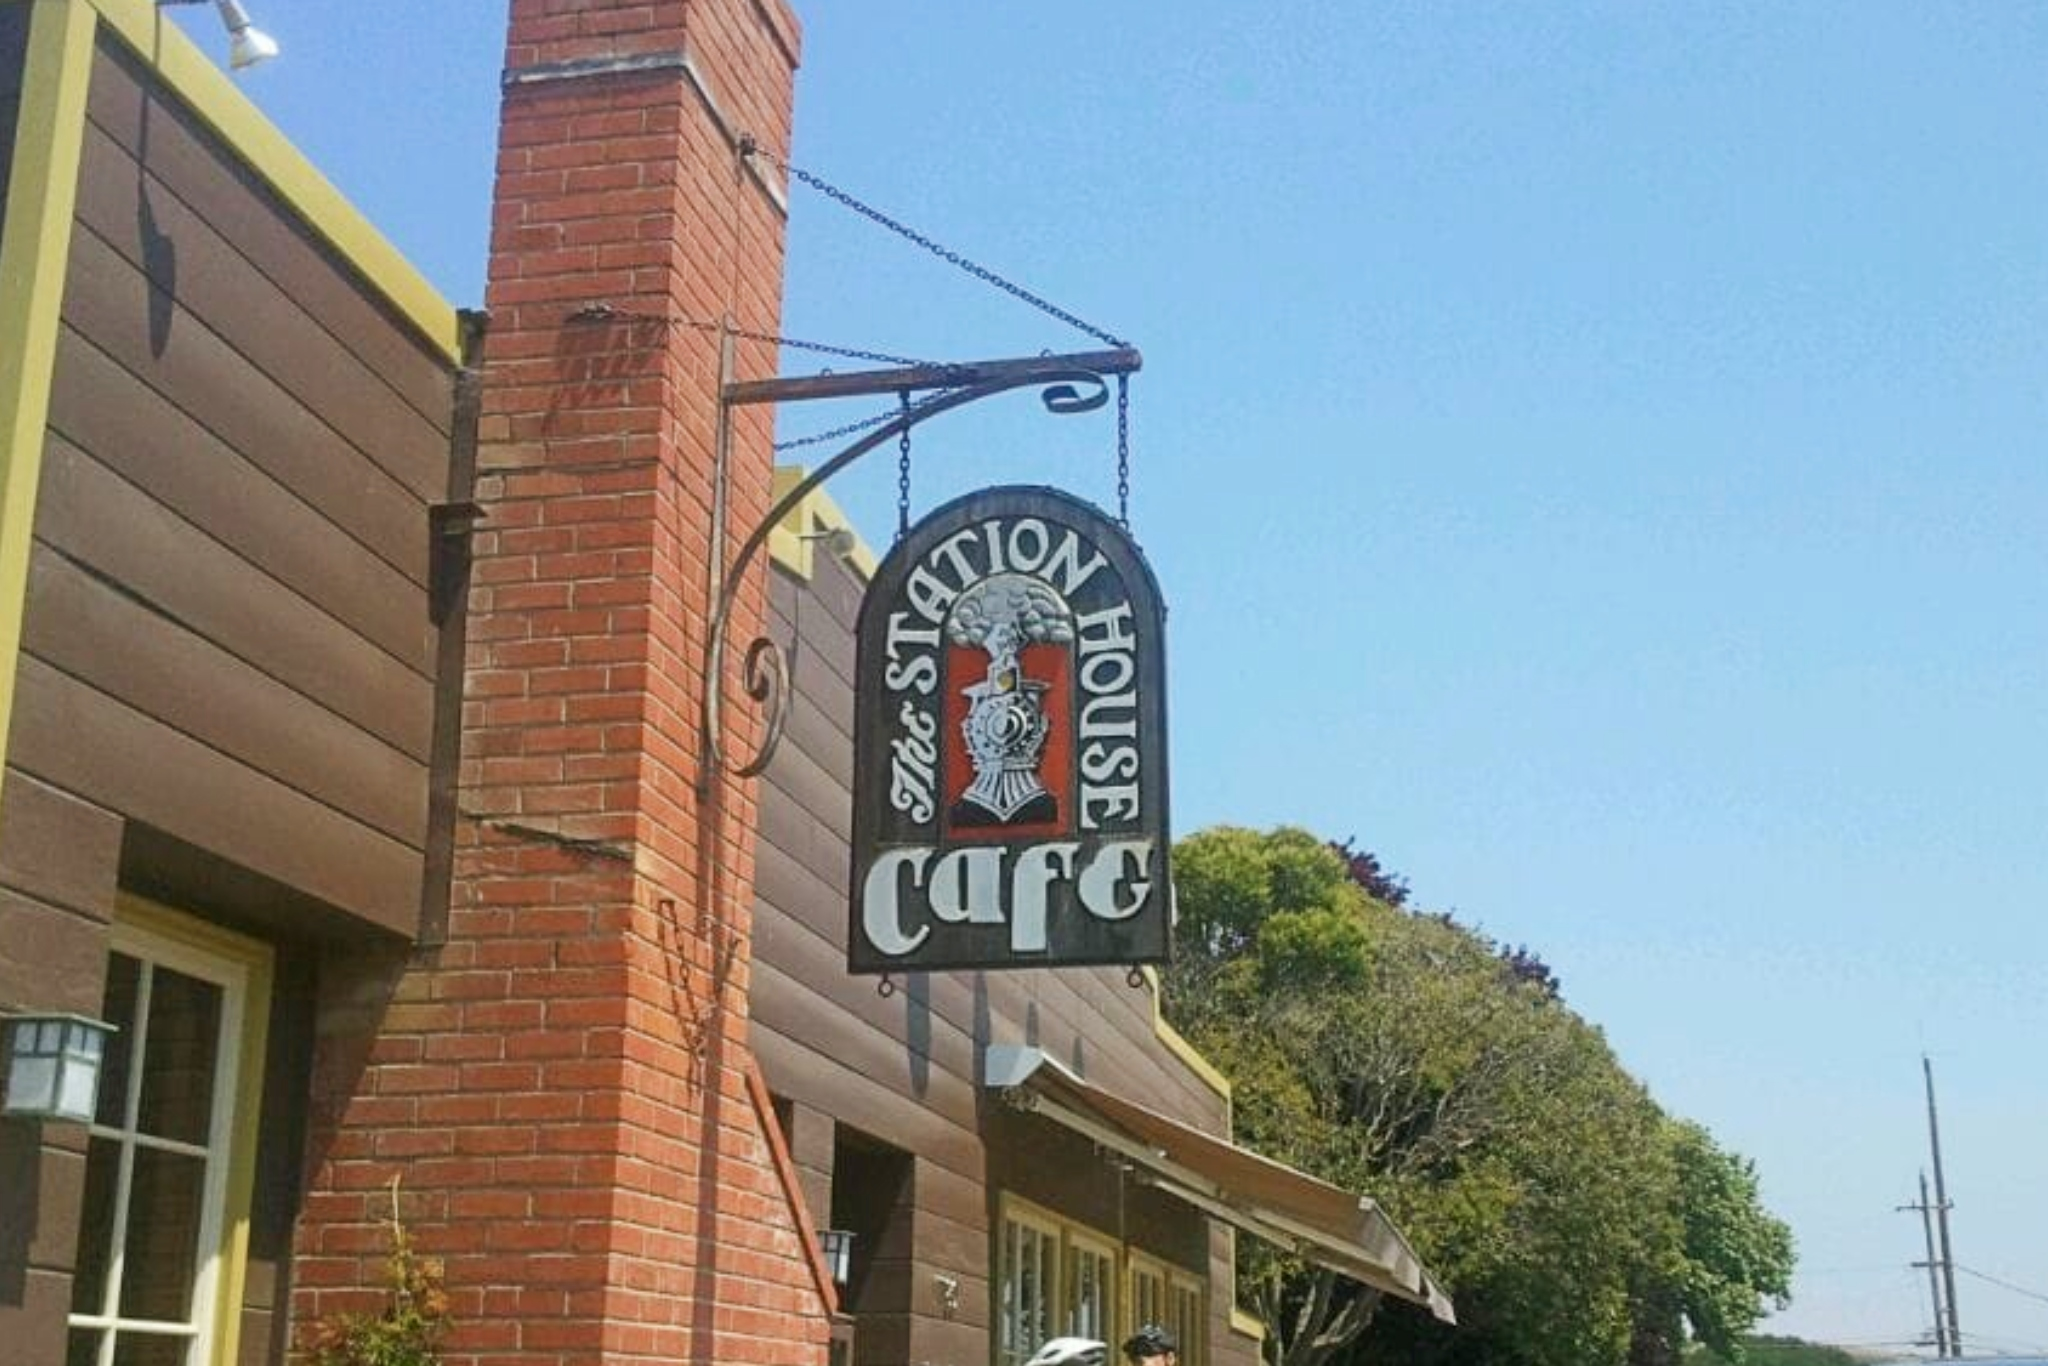 Last minute lease extension keeps Station House Café in Point Reyes – for now